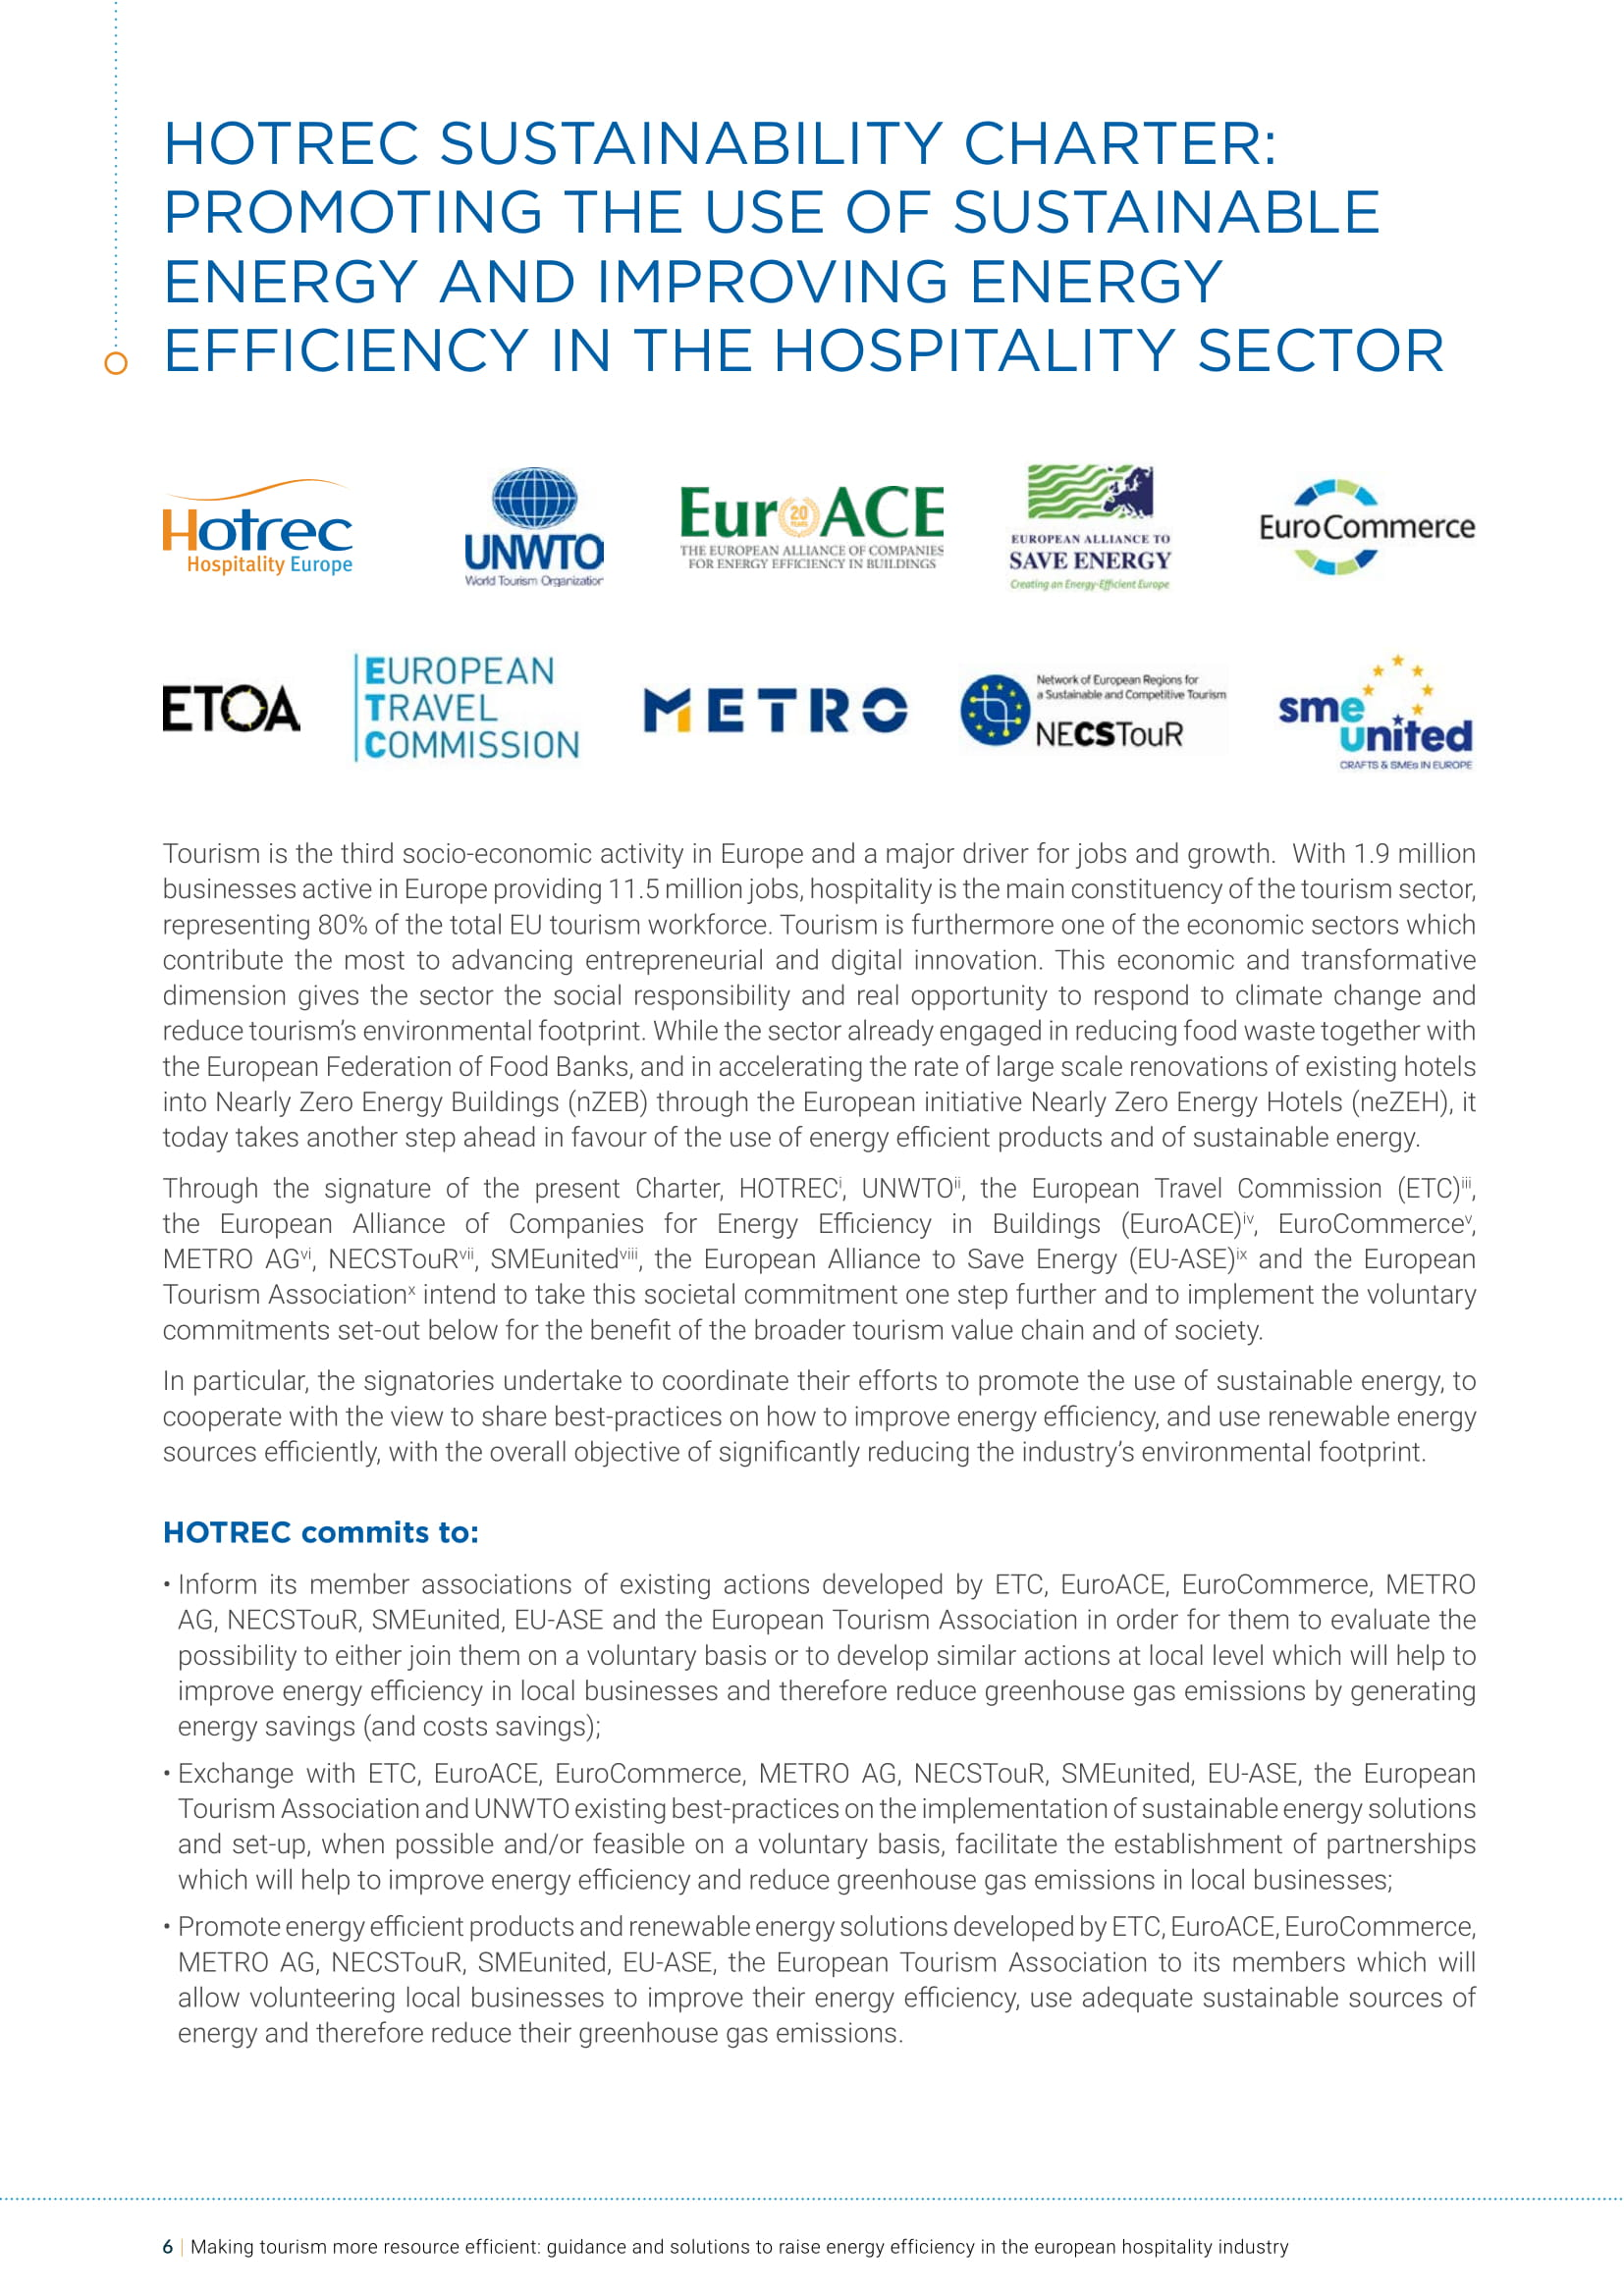 HOTREC Sustainability Charter: Promoting the use of